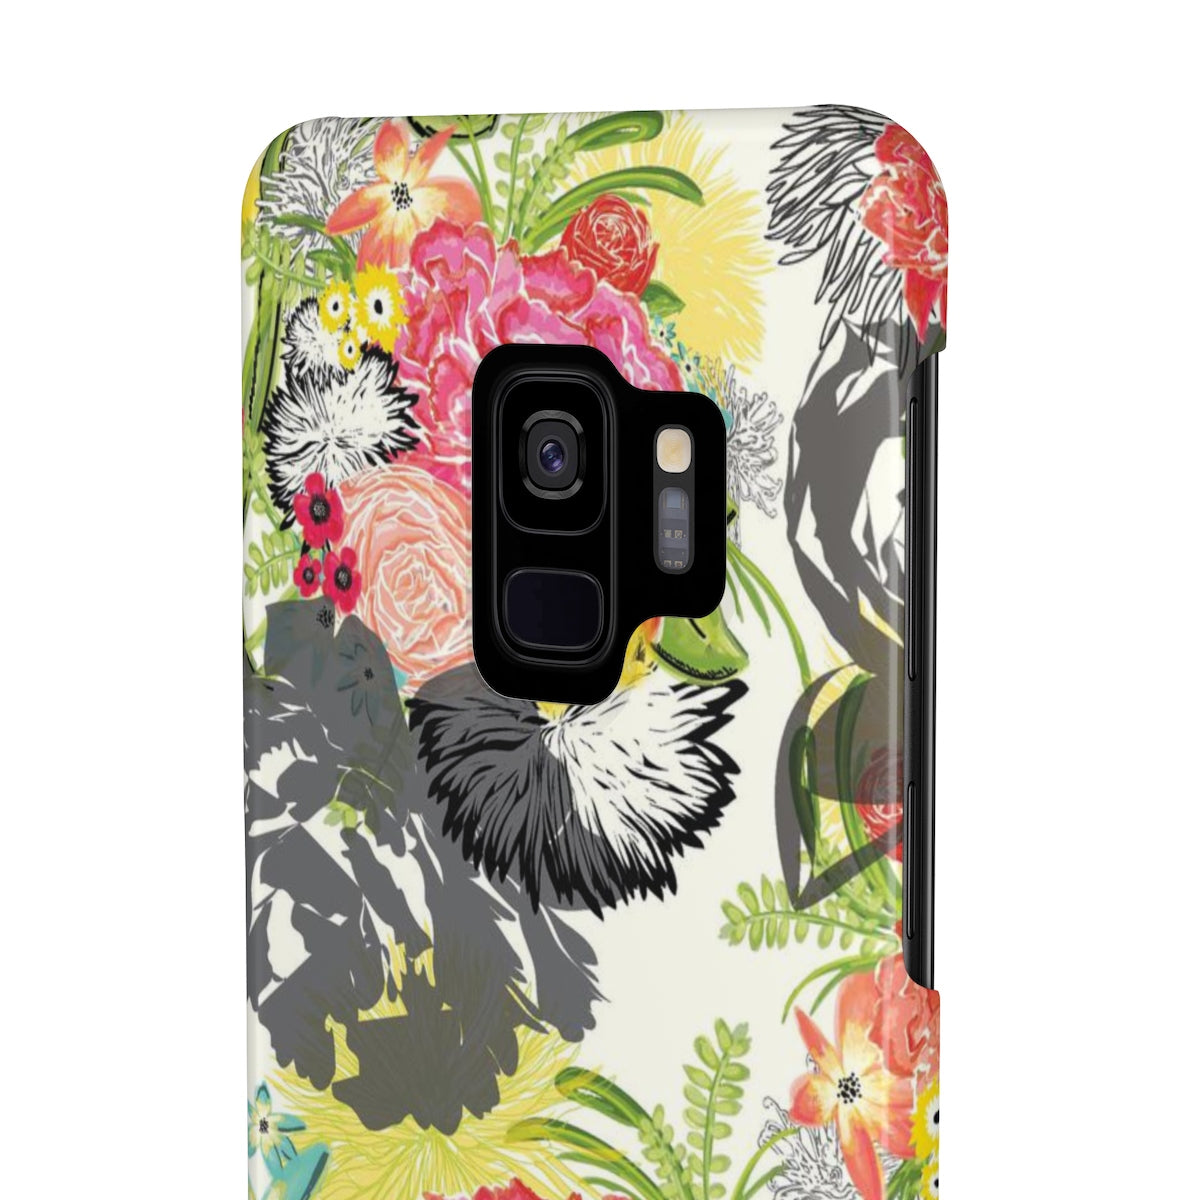 Michella Sleek and Chic Phone Case